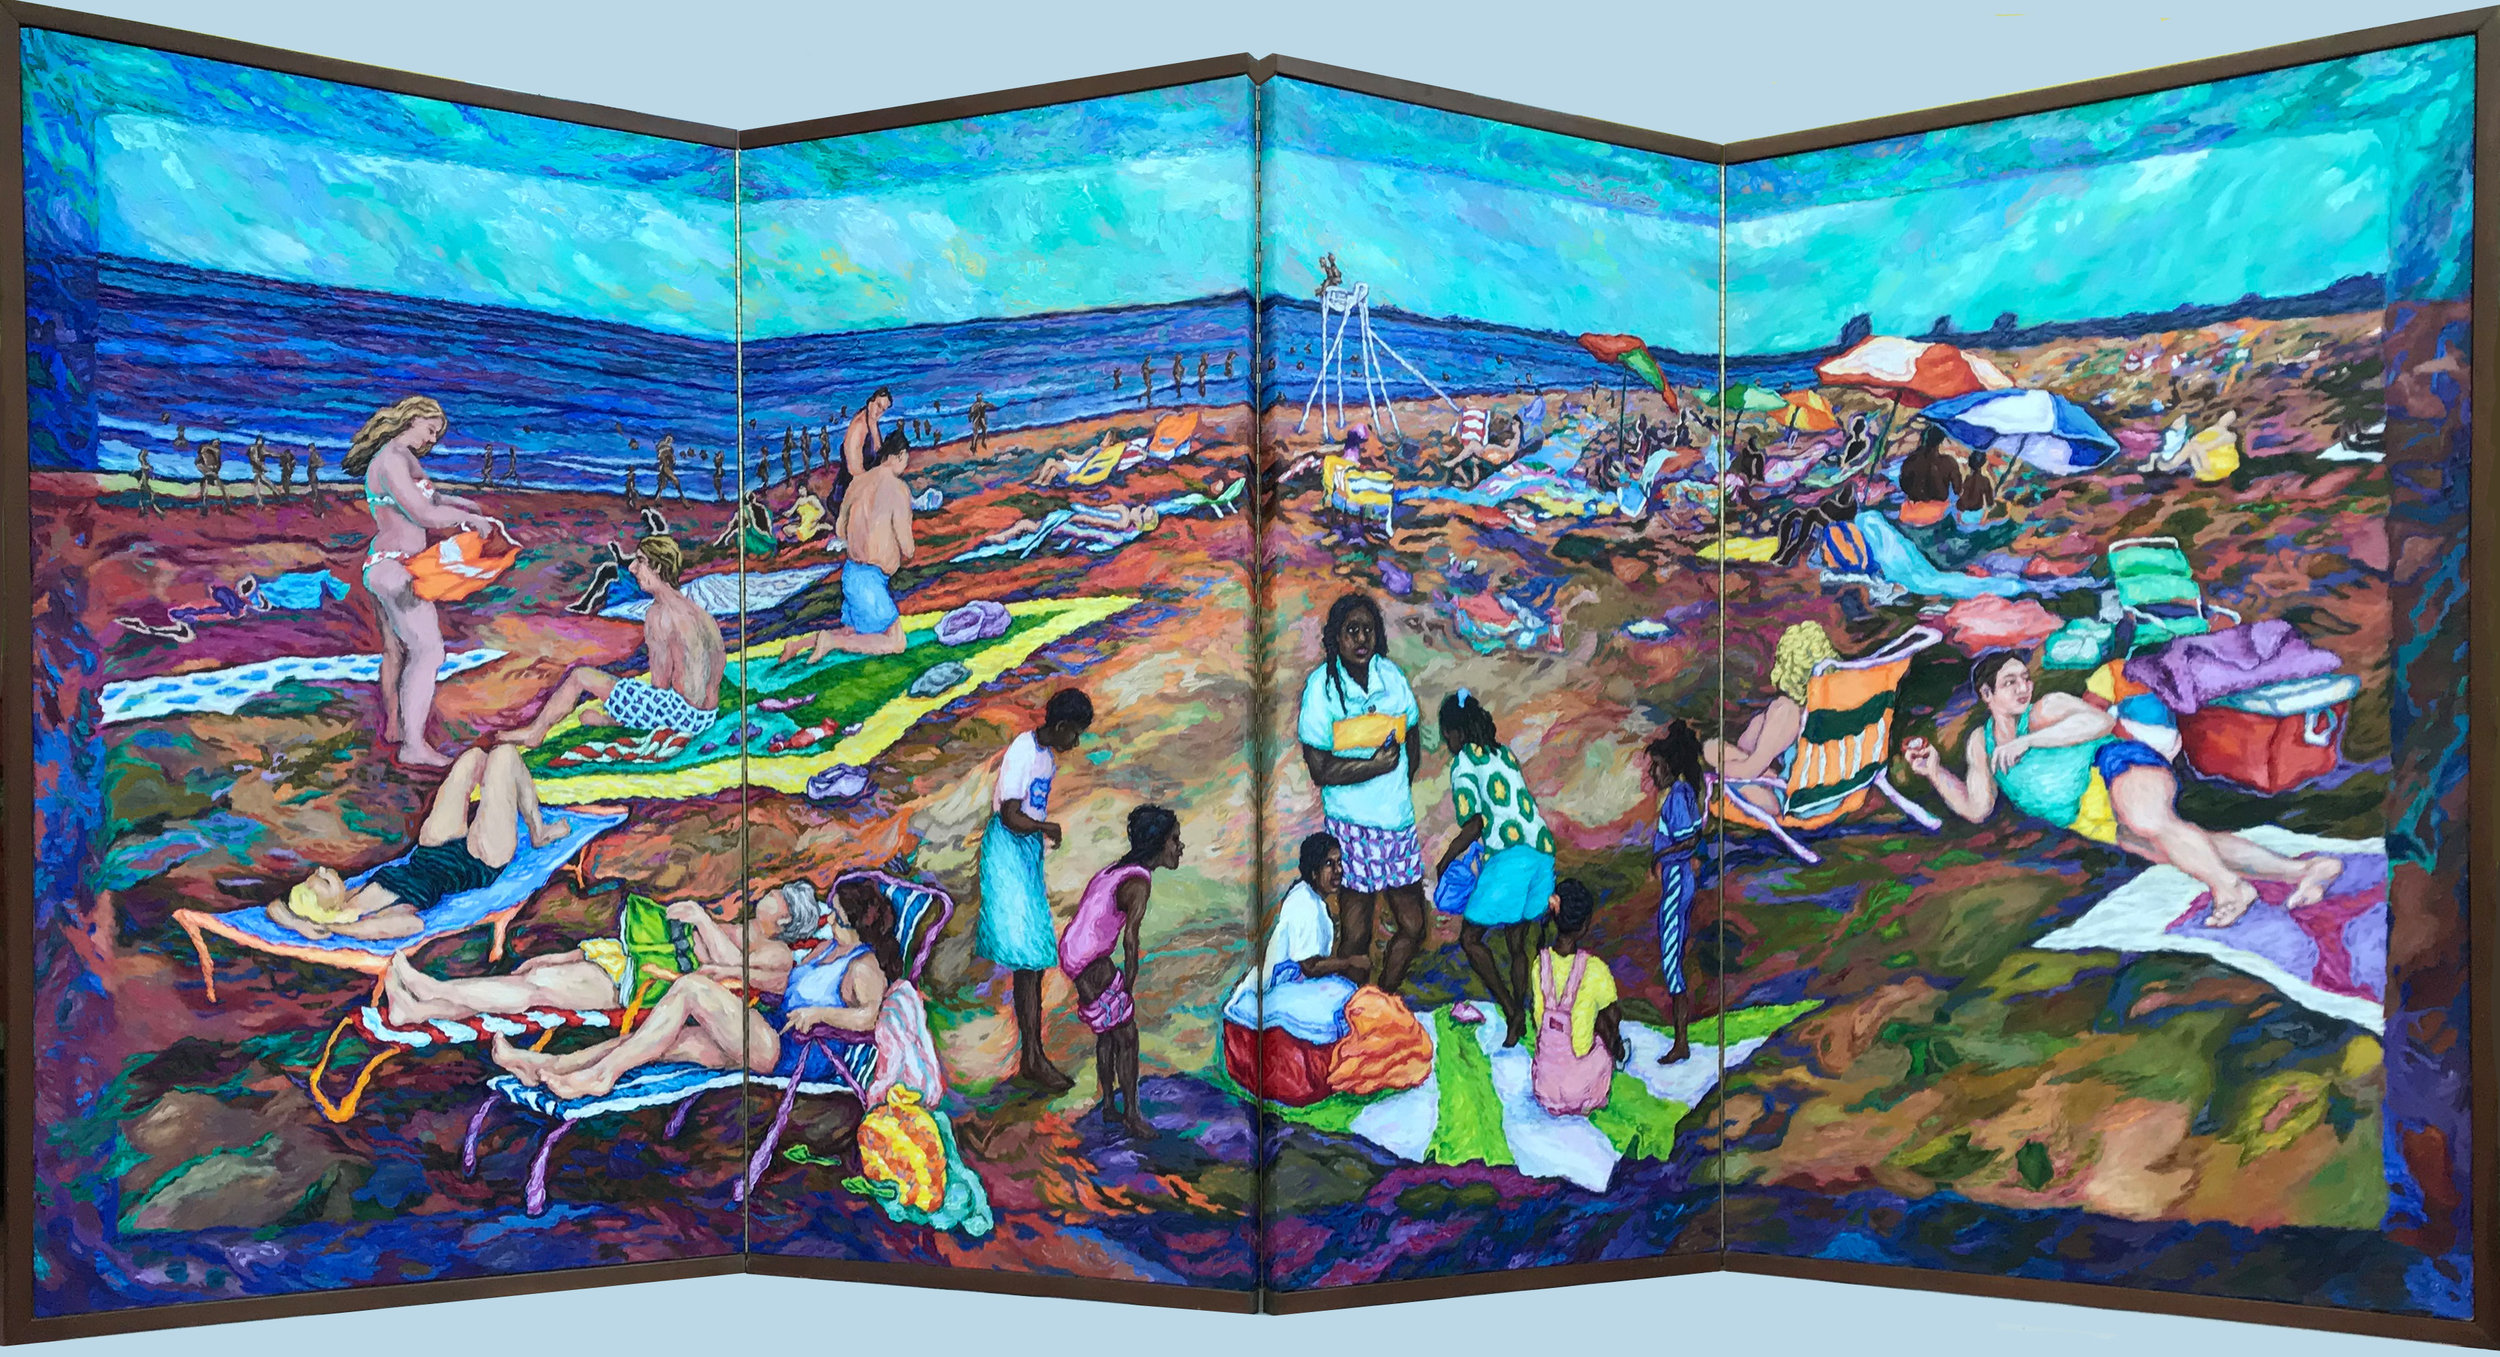 At the Shore: pilgrimage and right of passage     - 4 panel folding screen    62 x 120 inches when folded          Snapshots theme